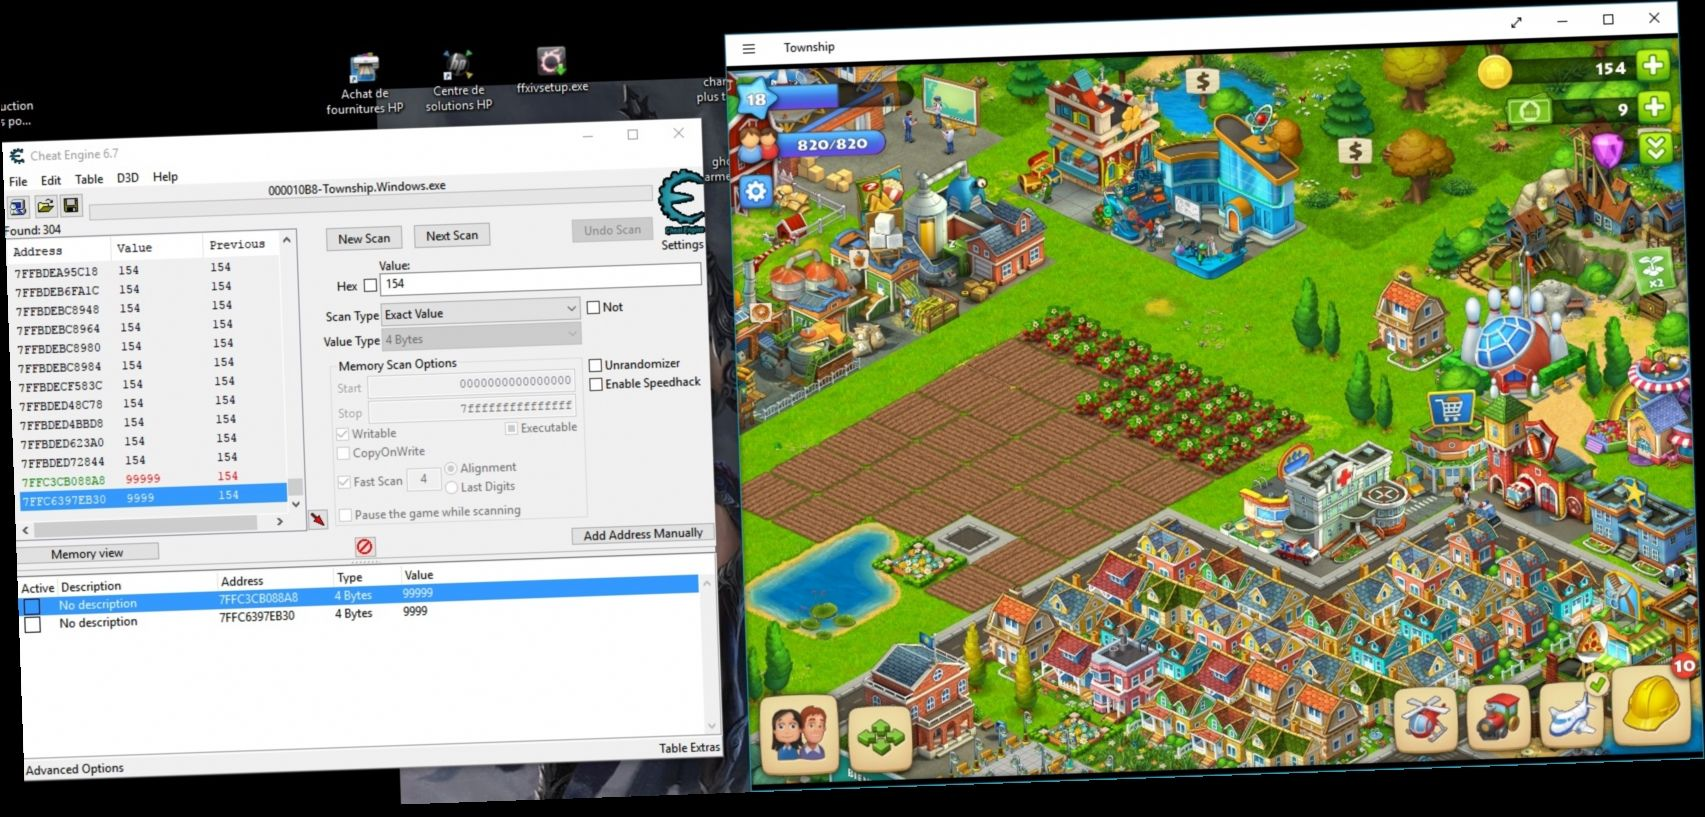 township cheat engine not working в 2020 г